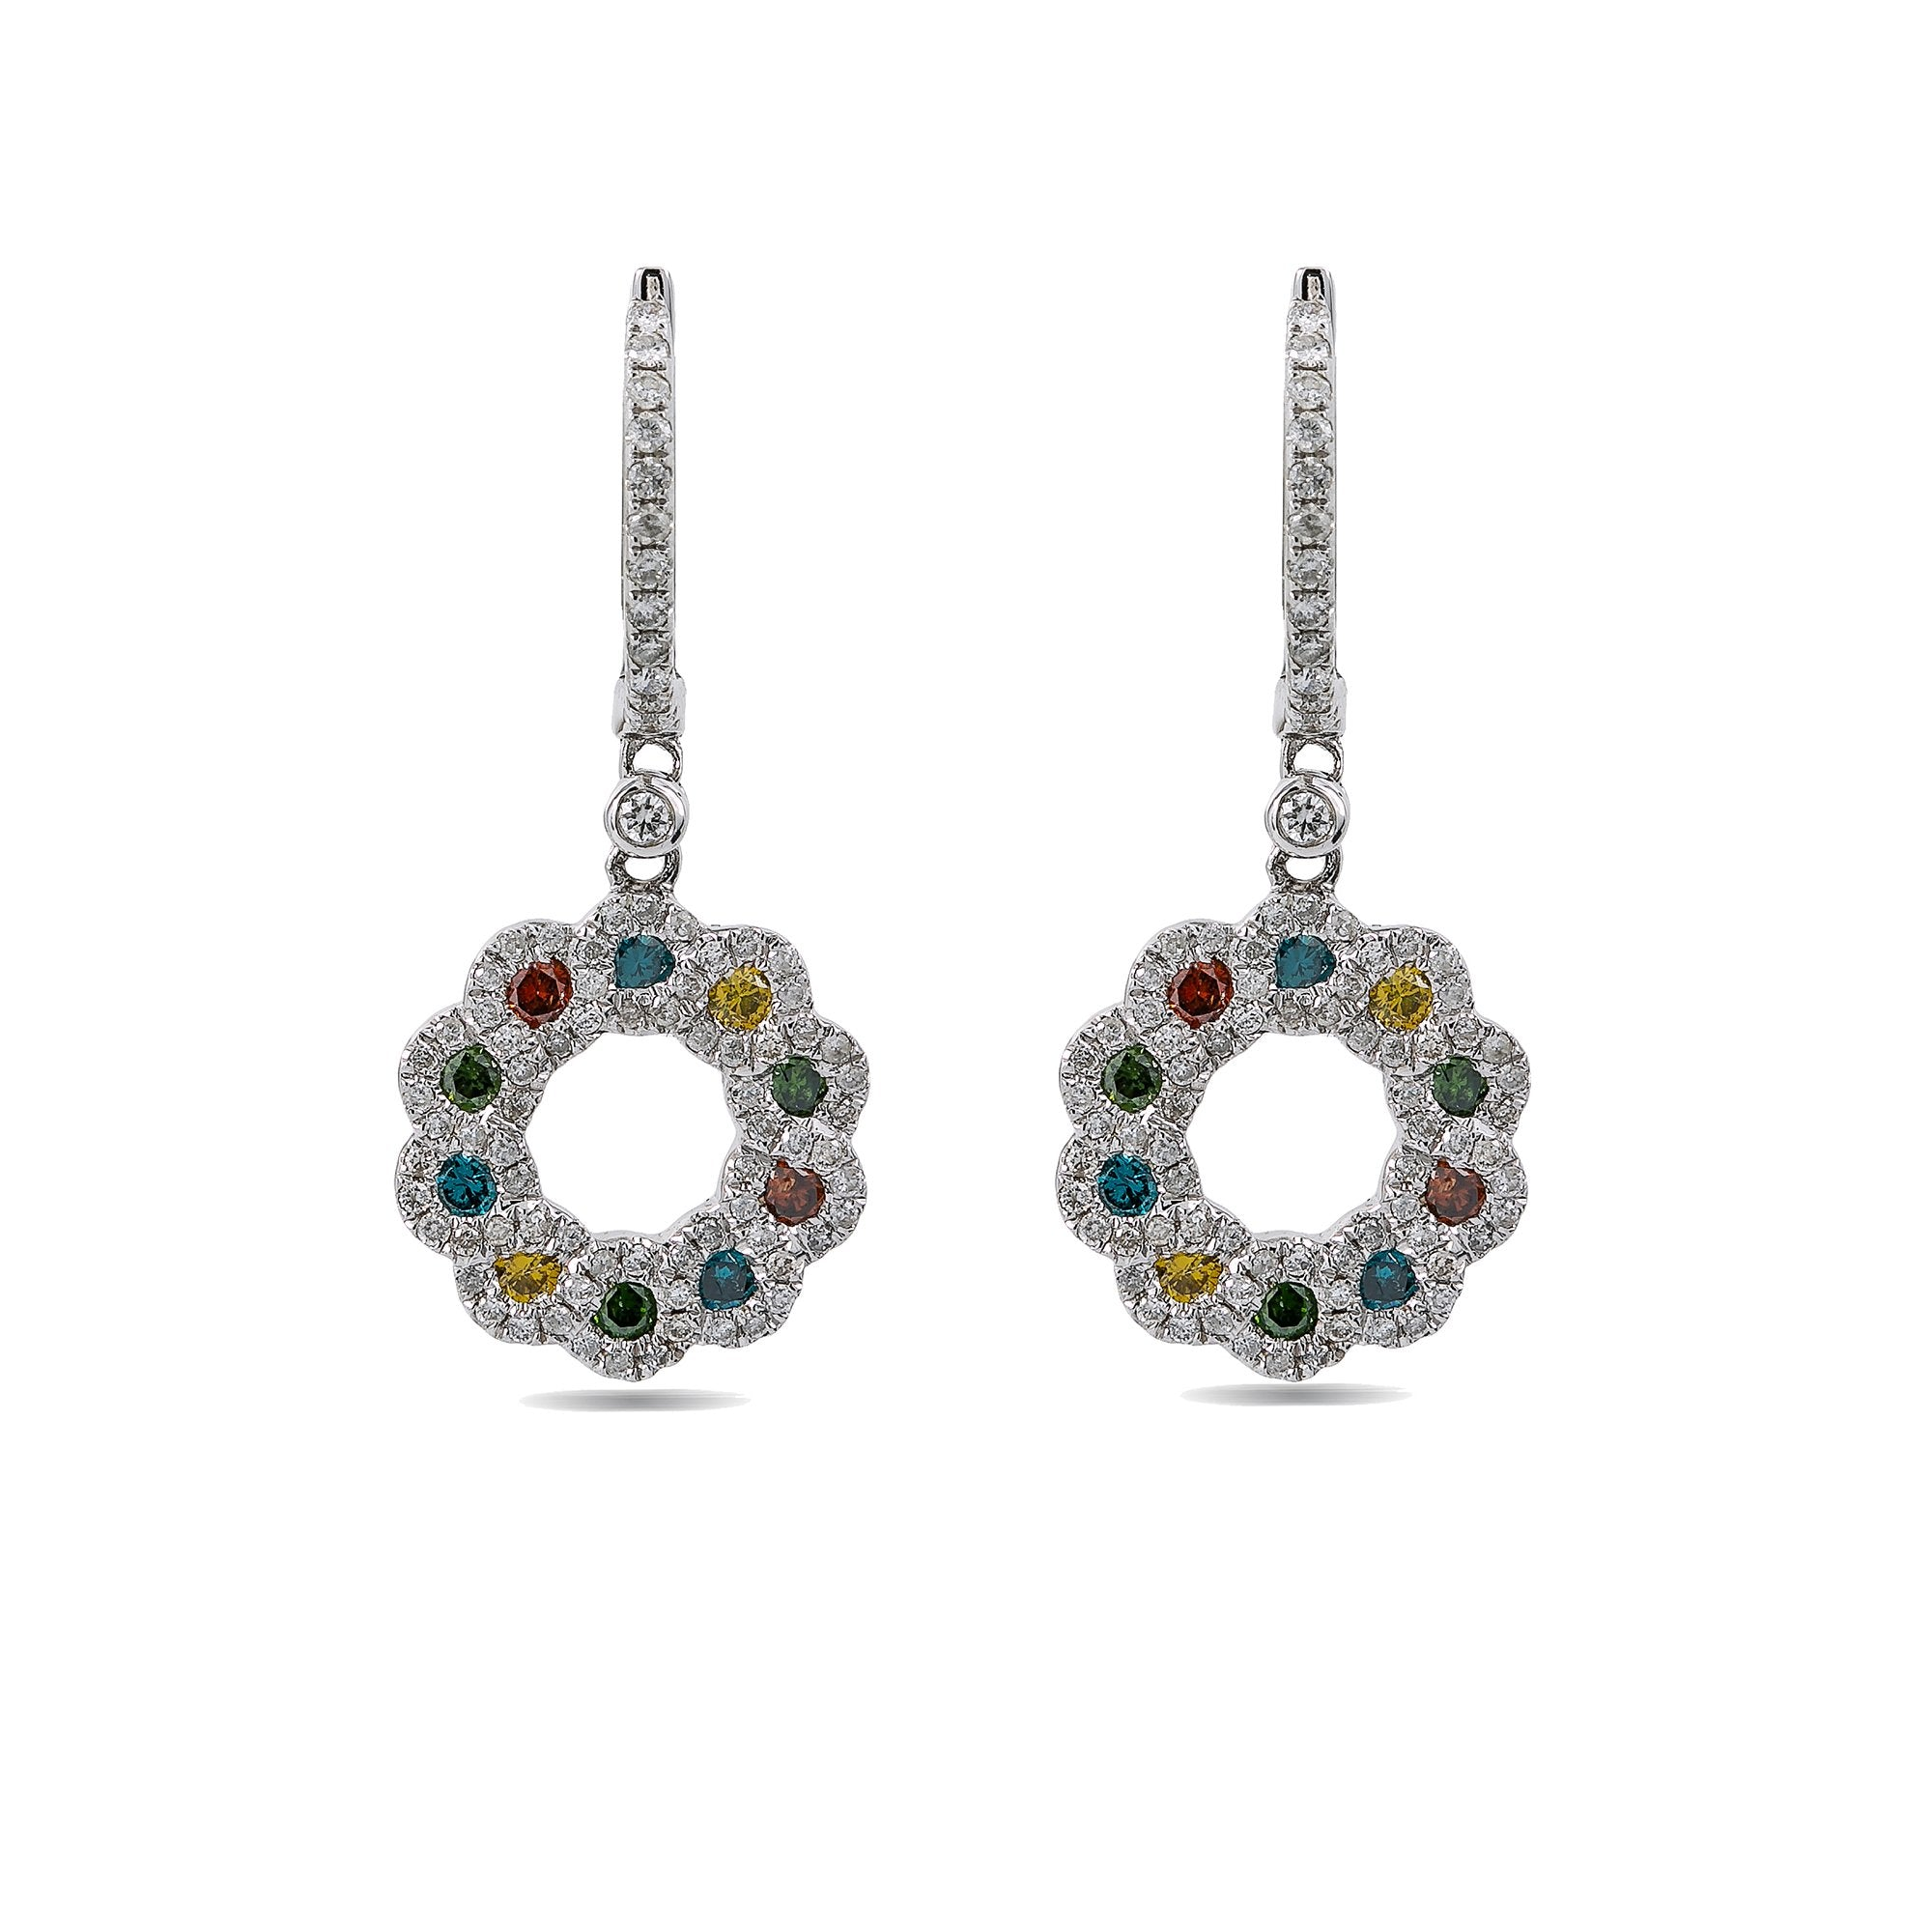 14K White Gold Ladies Drop Earrings colored Diamonds With 1.48 CT Diamonds